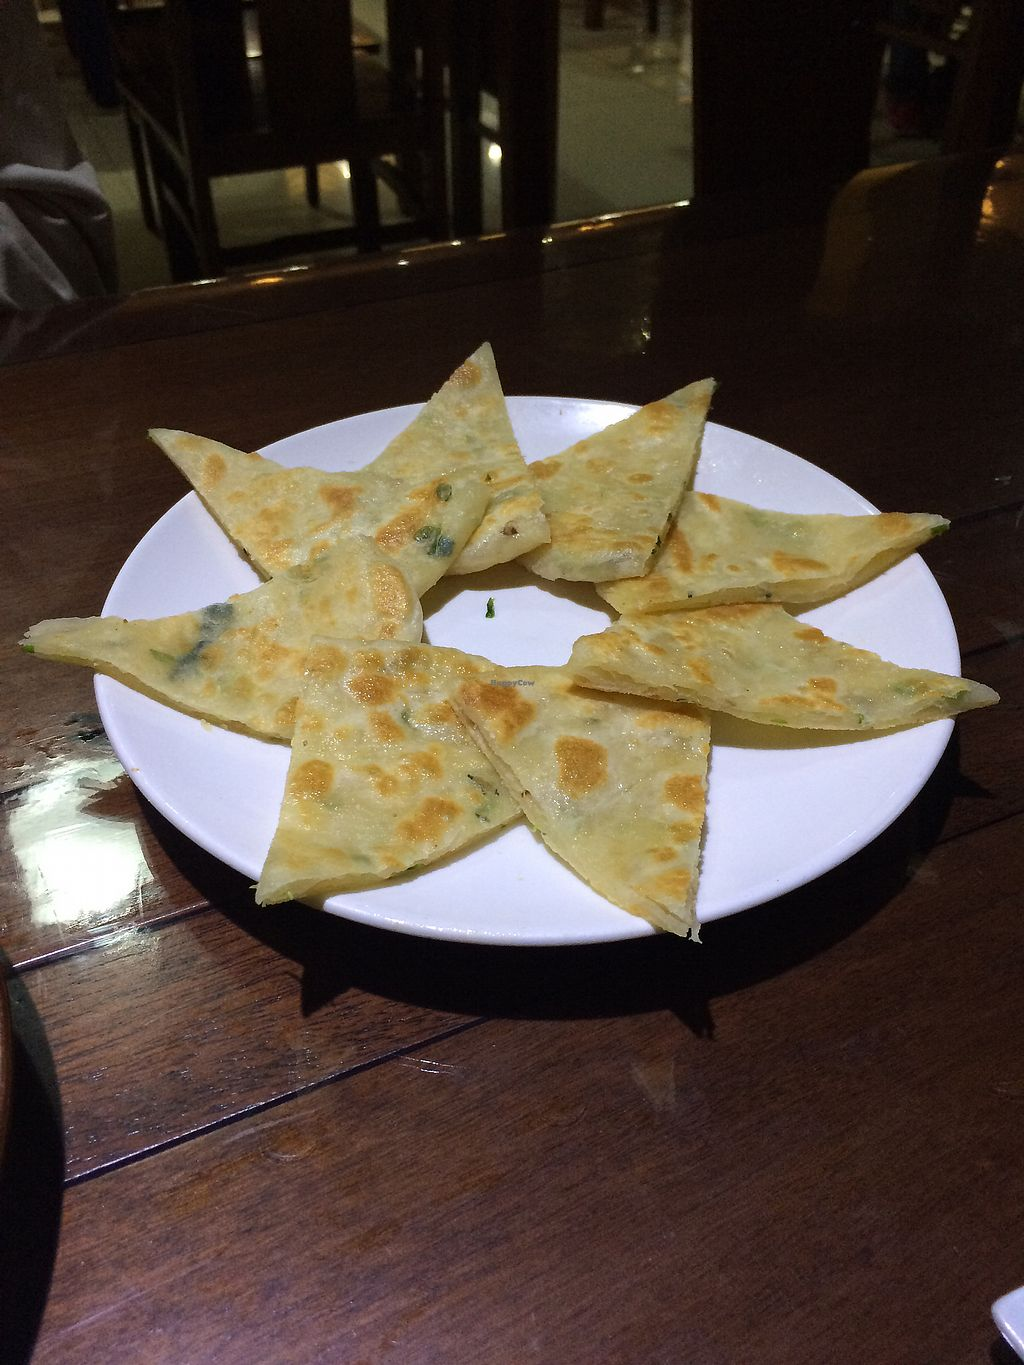 "Photo of Fu Hui Ci Yuan Vegetarian Cultural Restaurant  by <a href=""/members/profile/Italian.vegan"">Italian.vegan</a> <br/>Toon pancake <br/> October 10, 2017  - <a href='/contact/abuse/image/28431/313946'>Report</a>"